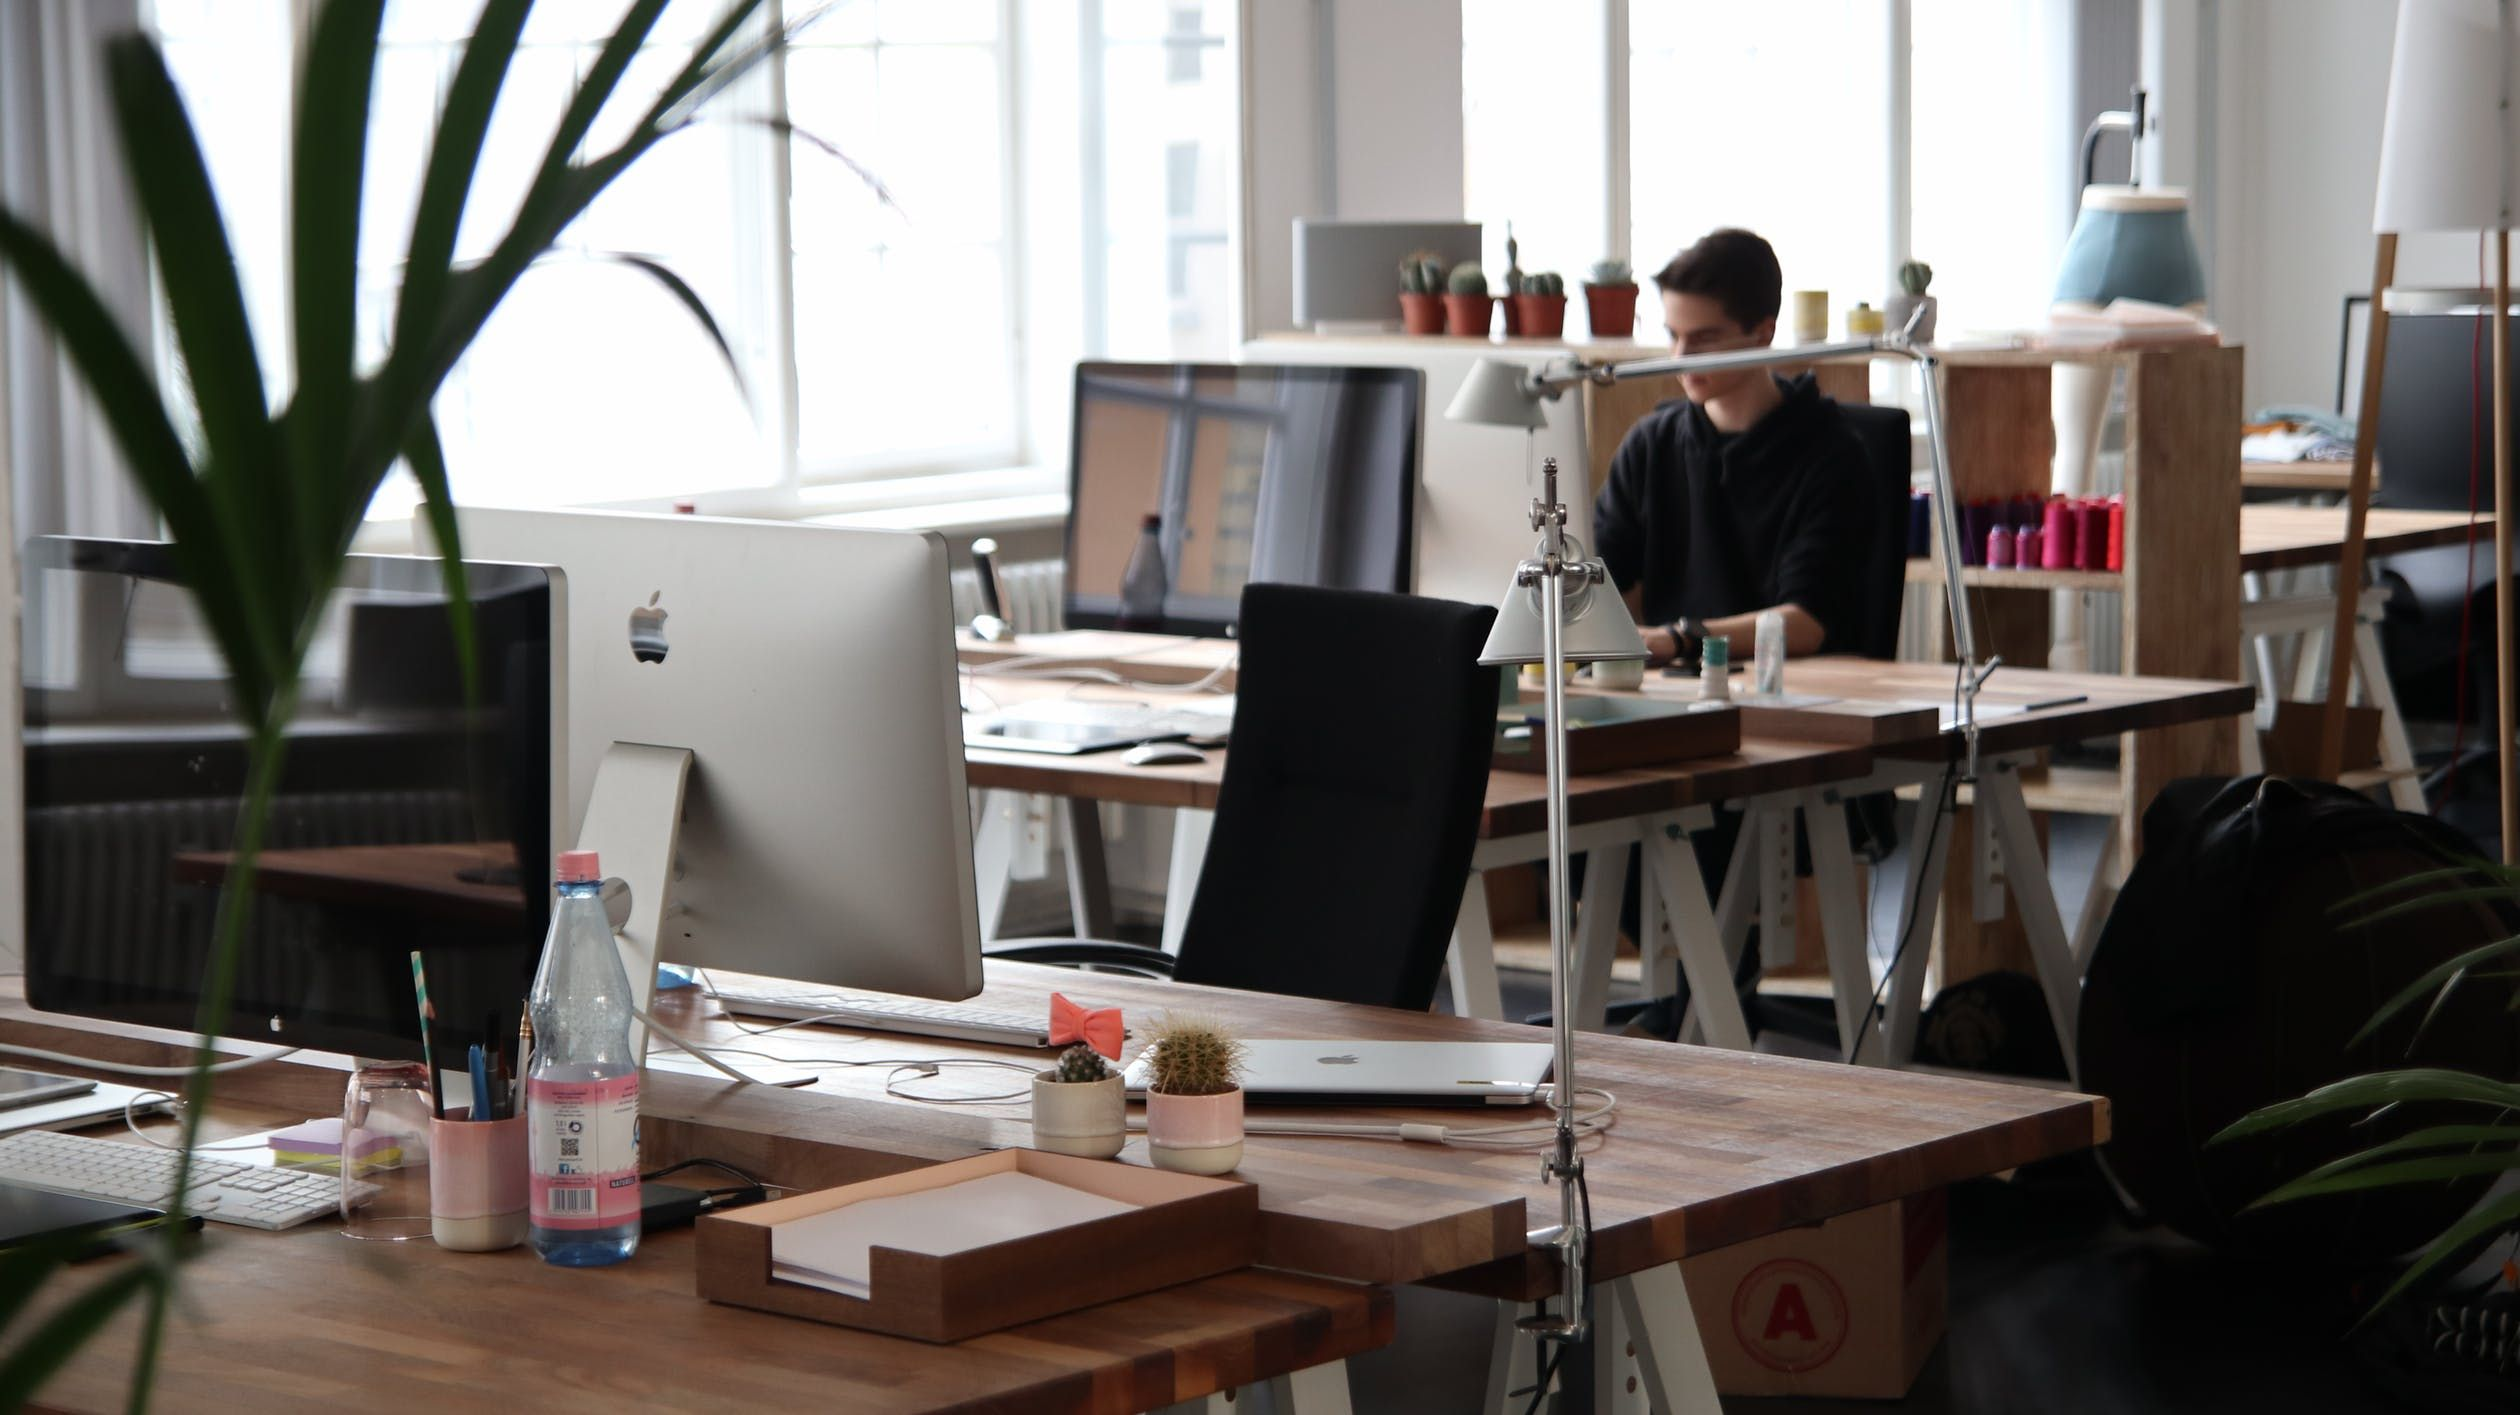 Should You Include Sit Stand Desks In Your Office Design?